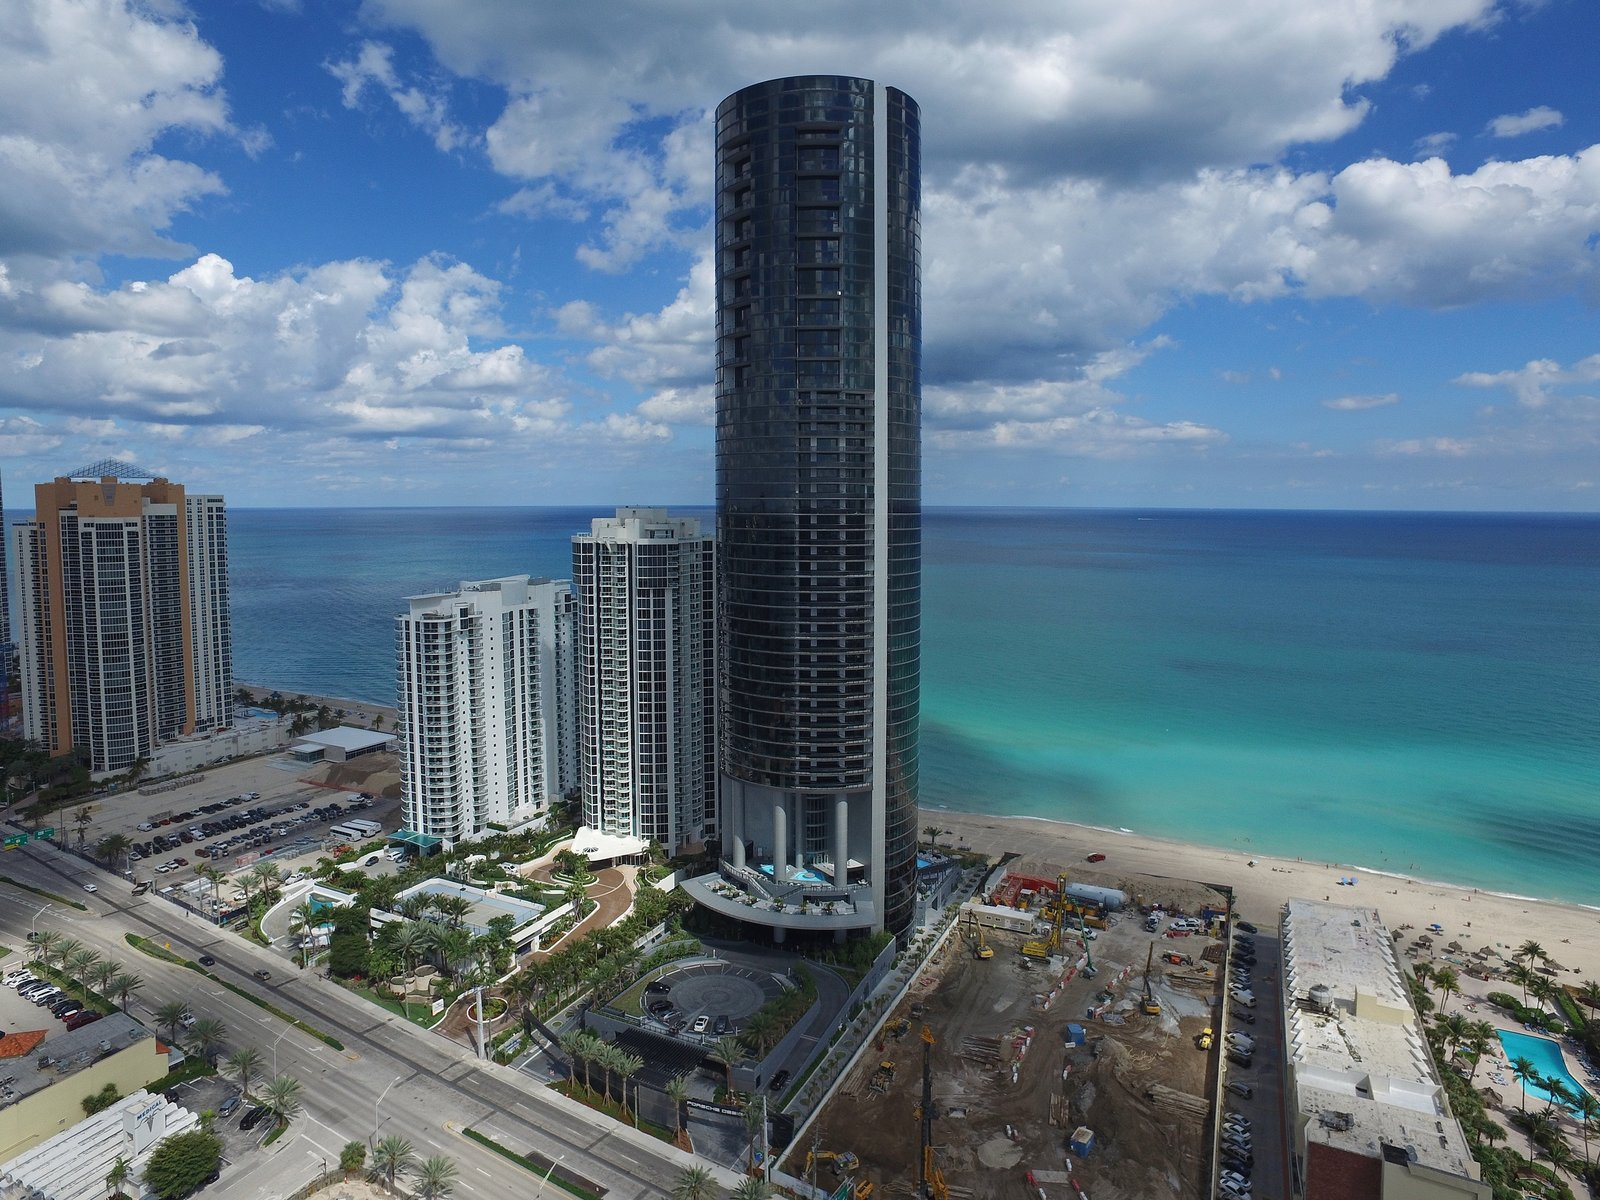 Photo 1 of 11 in Porsche Design's Lavish Residential Tower in Miami Lifts Residents and Cars Sky High